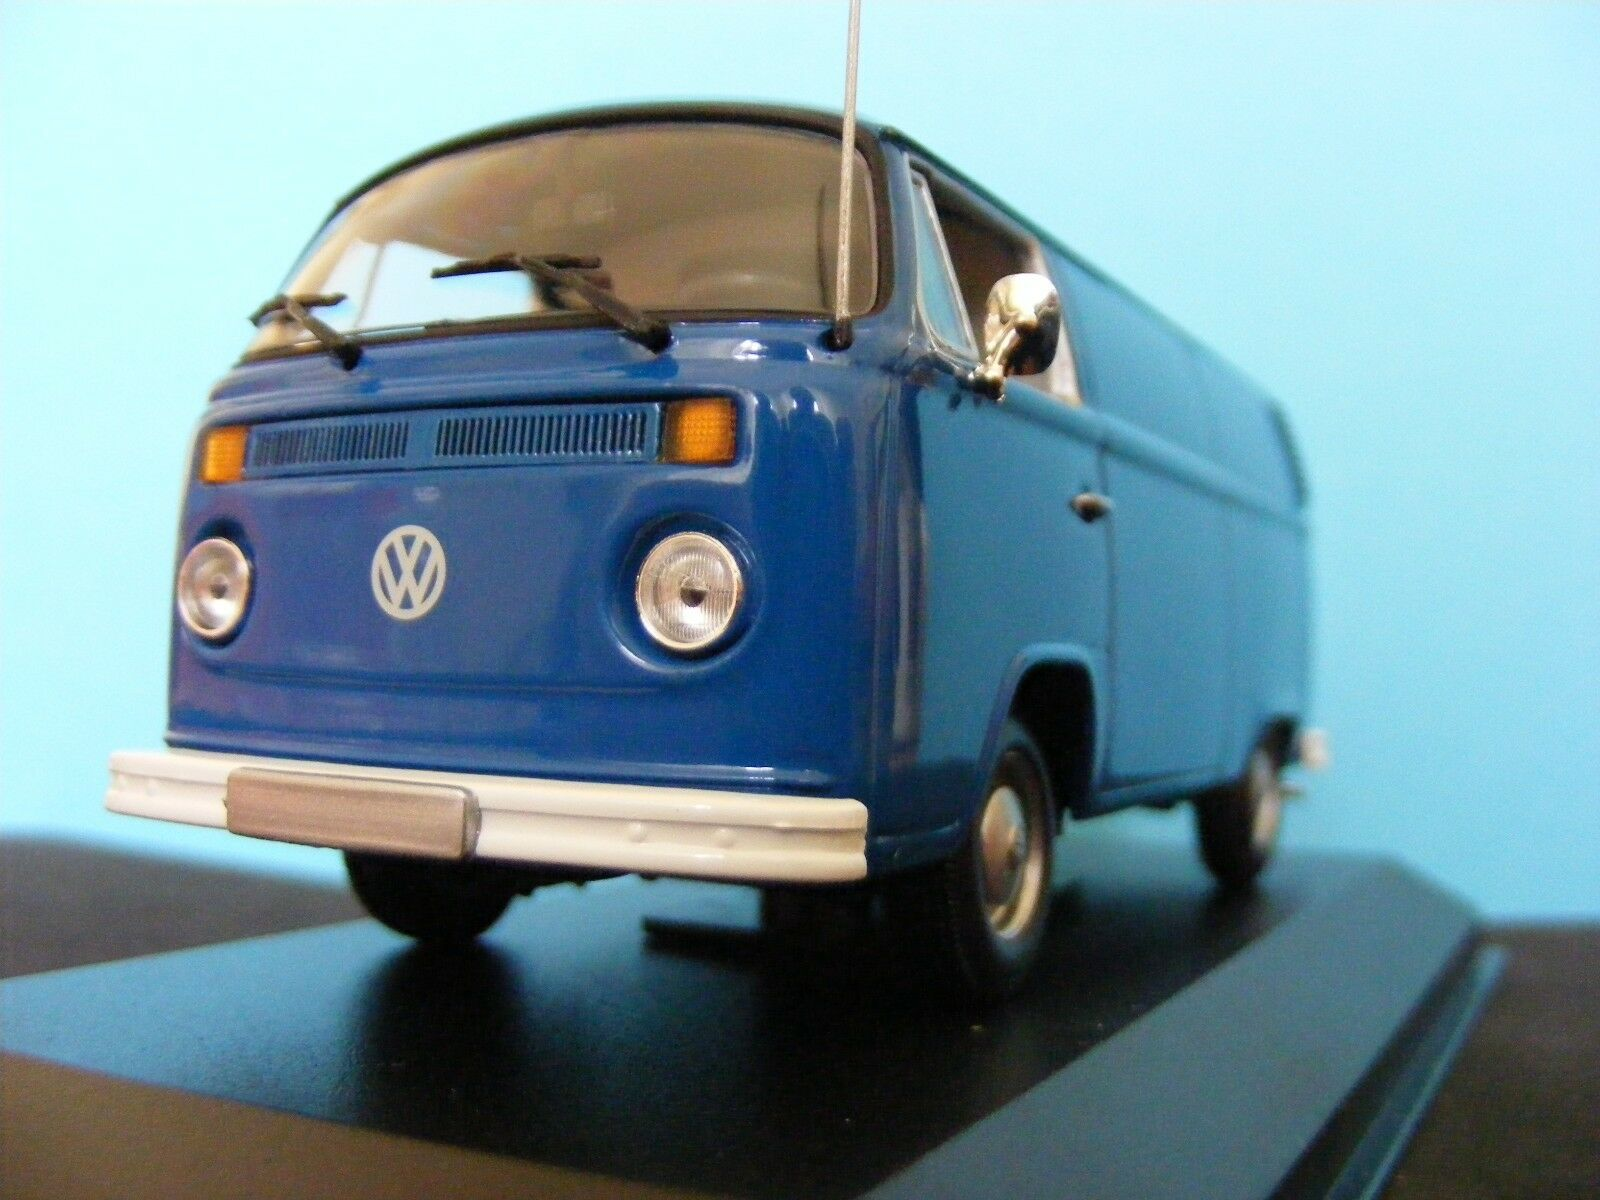 VW  Type 2 b Delivery Van in bluee   a Maxichamp New issue 1 43RD. .